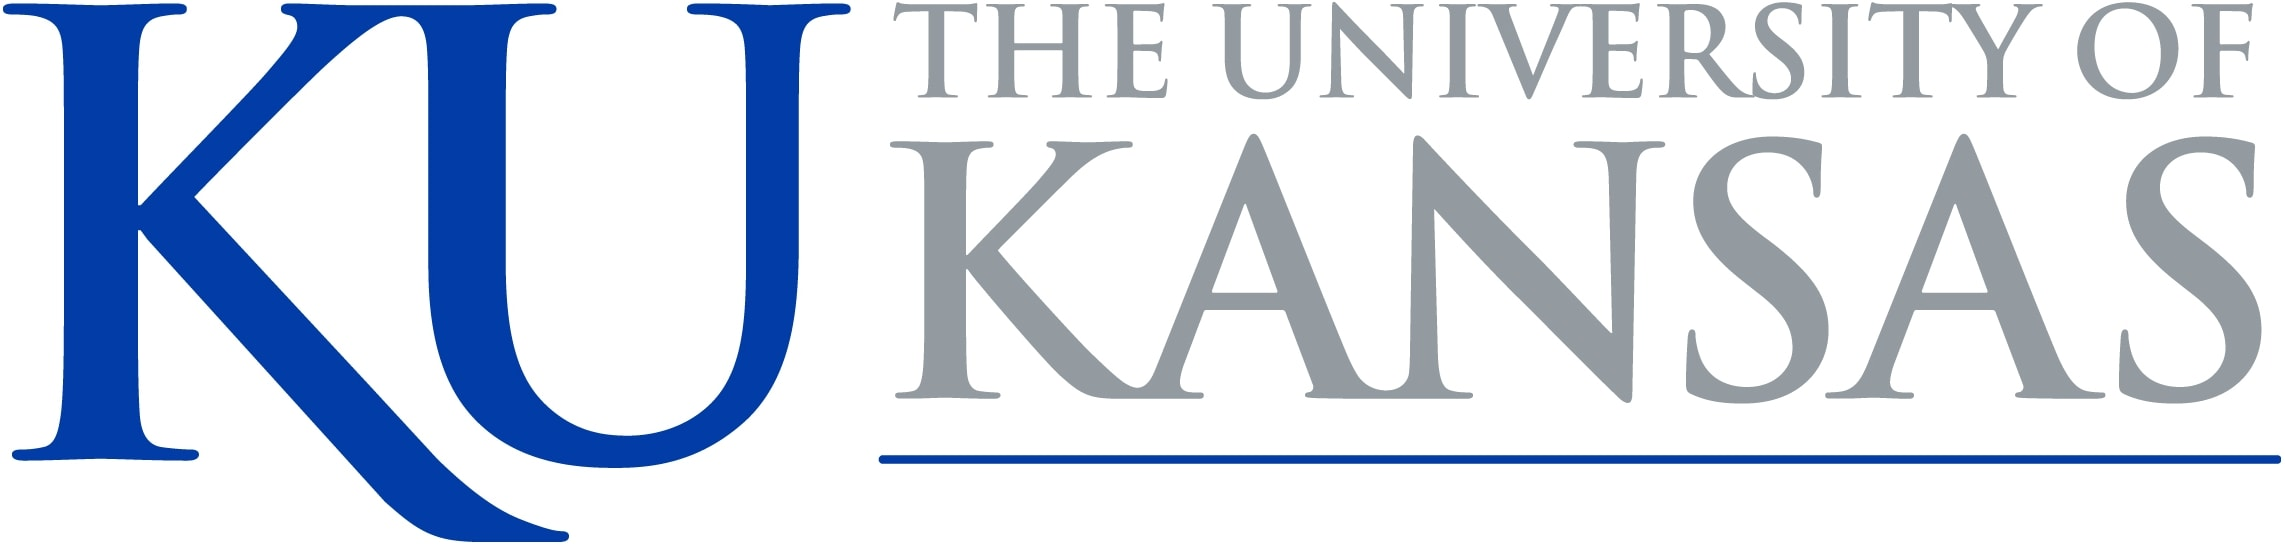 University-of-Kansas-KU-Logo